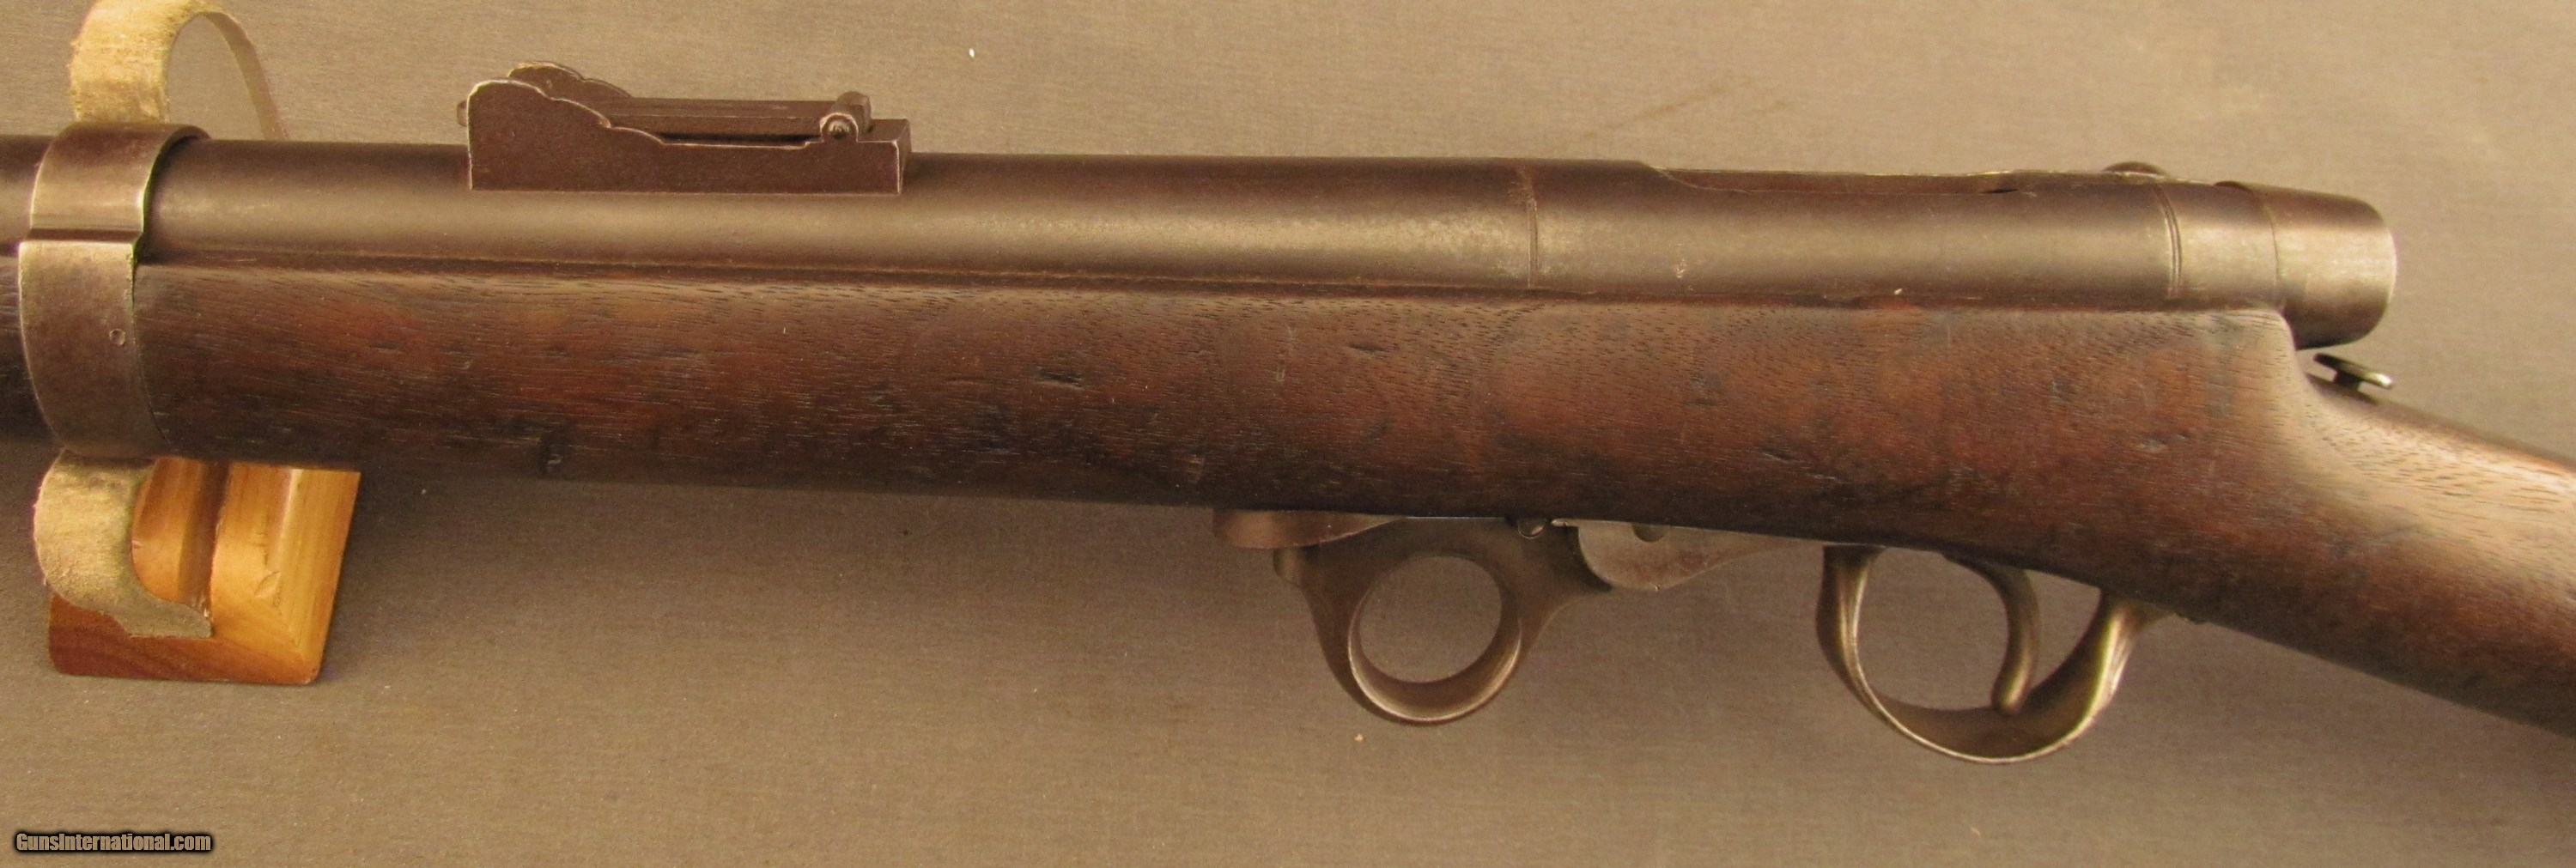 breech civil essay loading rifle war Many of the weapons used in the american civil war were of  into front line  service, such as the 1848 sharps breech-loading rifle, firing a 52.